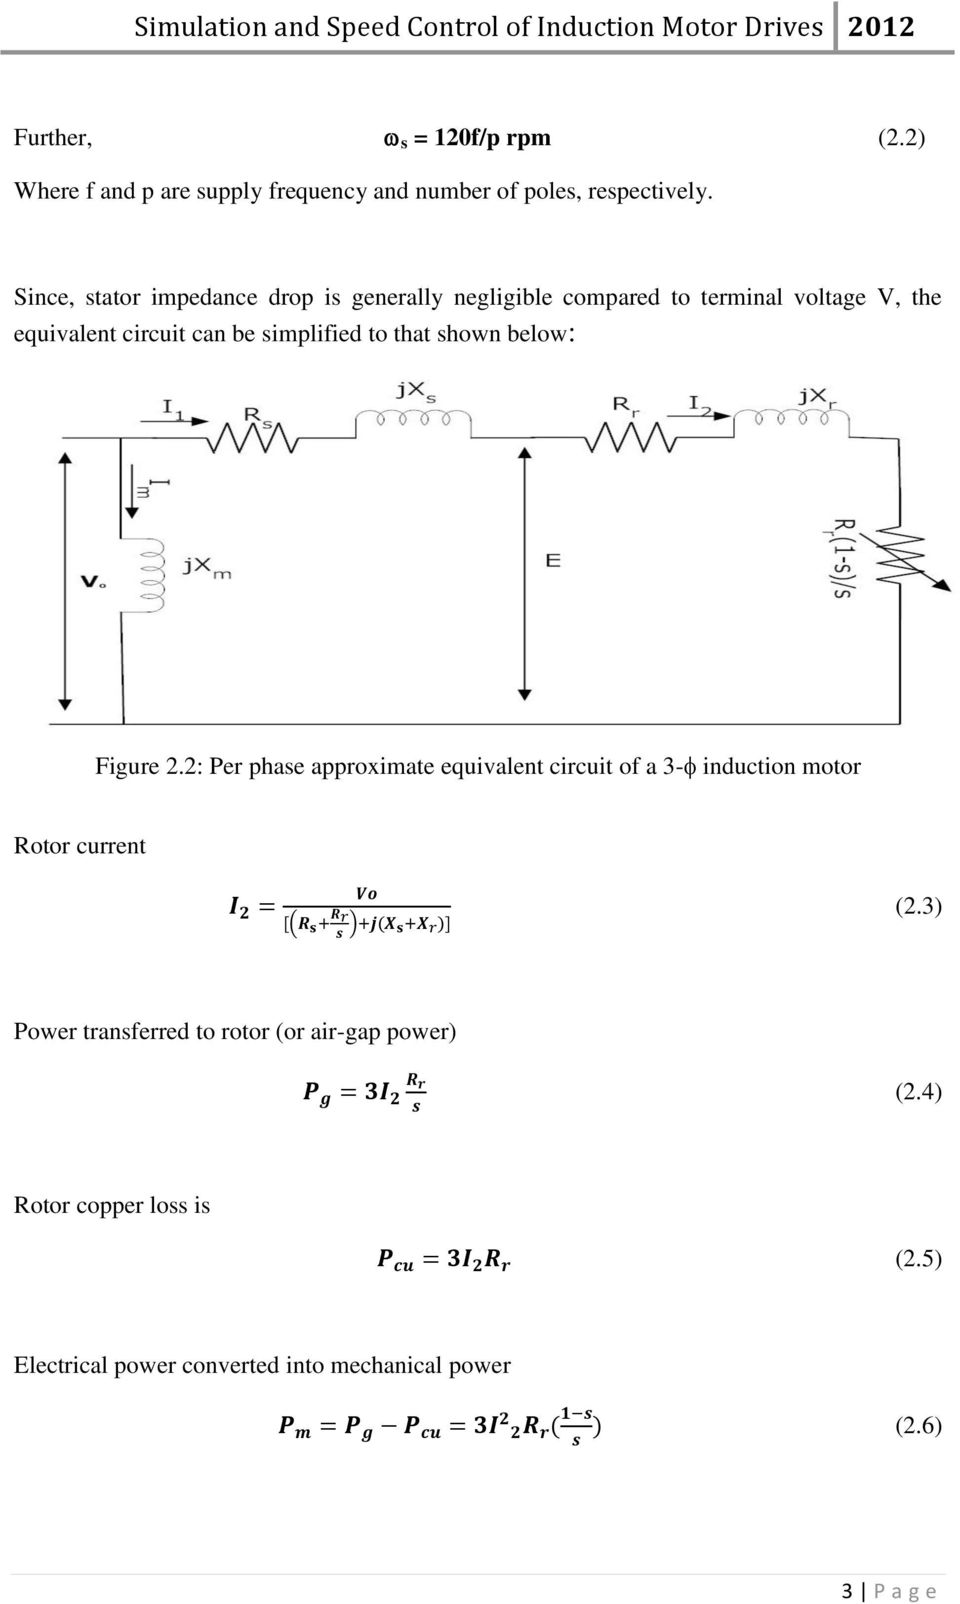 Simulation And Speed Control Of Induction Motor Drives Pdf Constant Airgap Equivalent Circuit Simplified To That Shown Below Figure 2